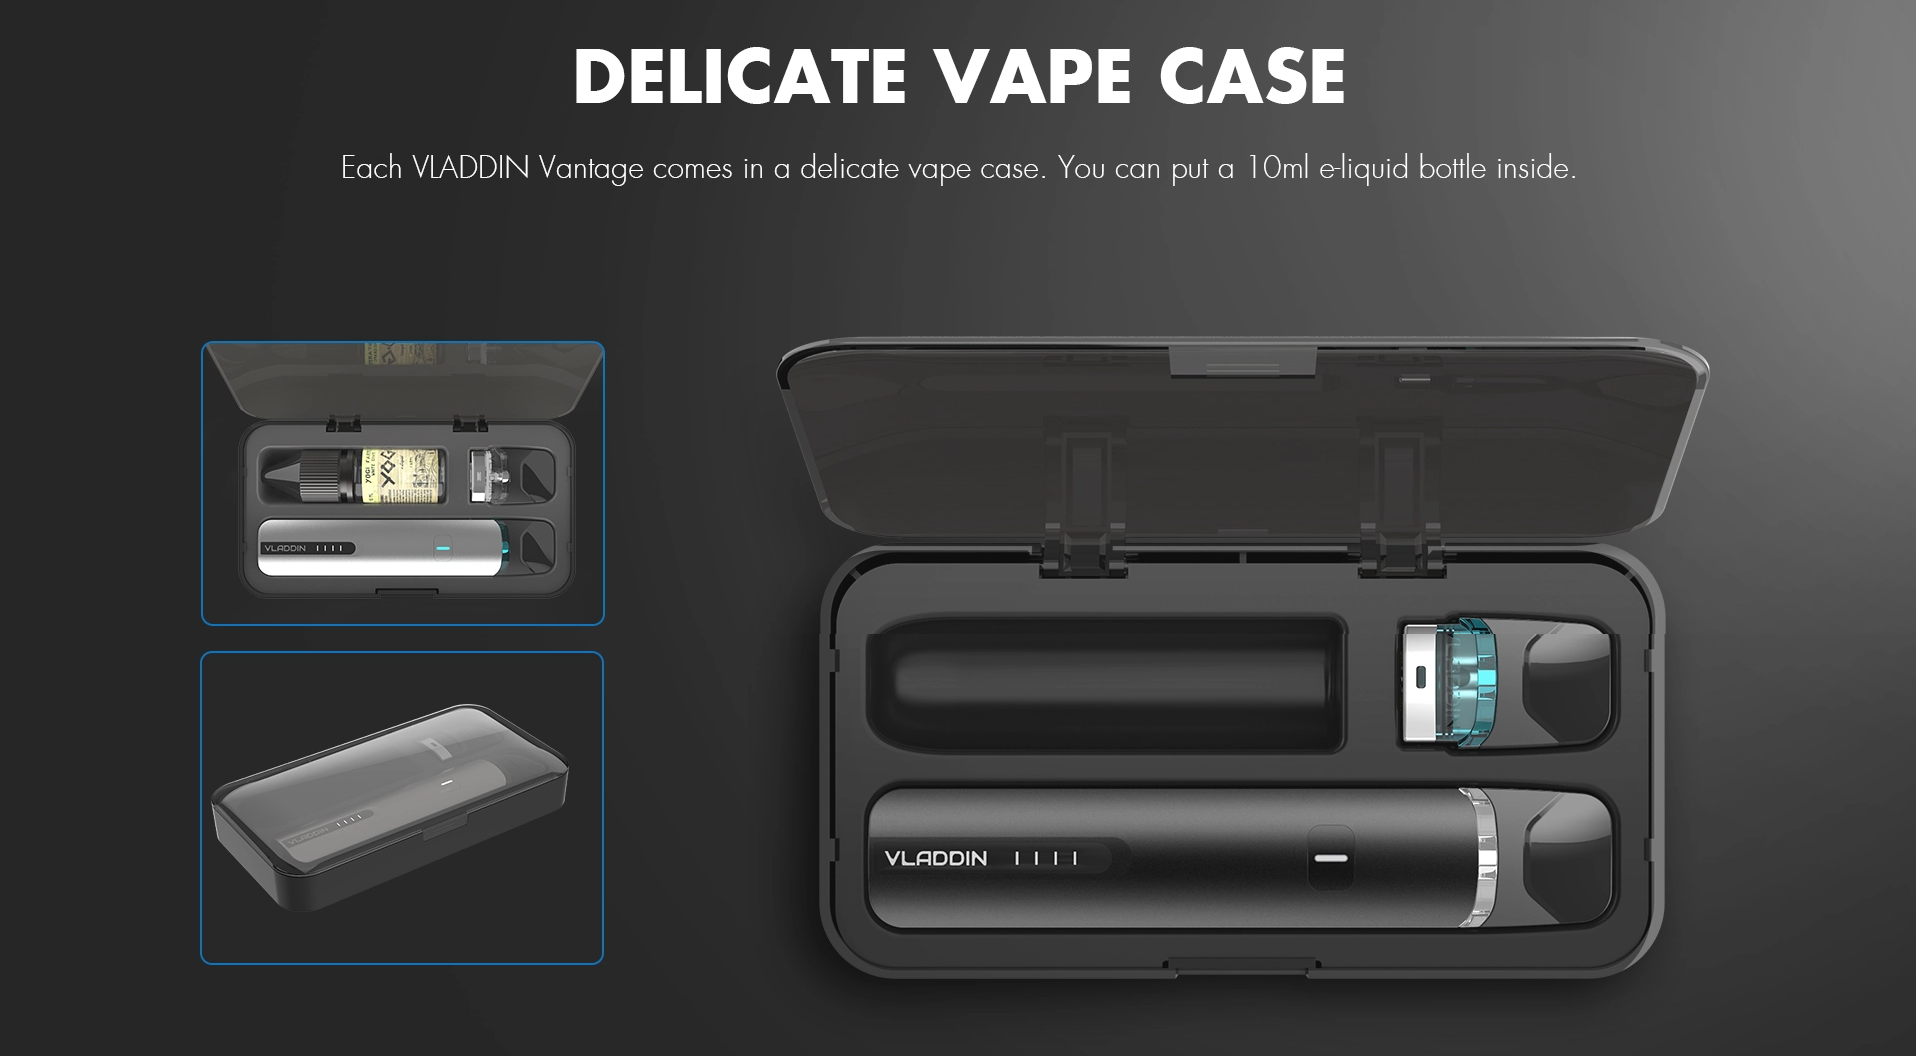 A black vape kit and carrying case against a black background.